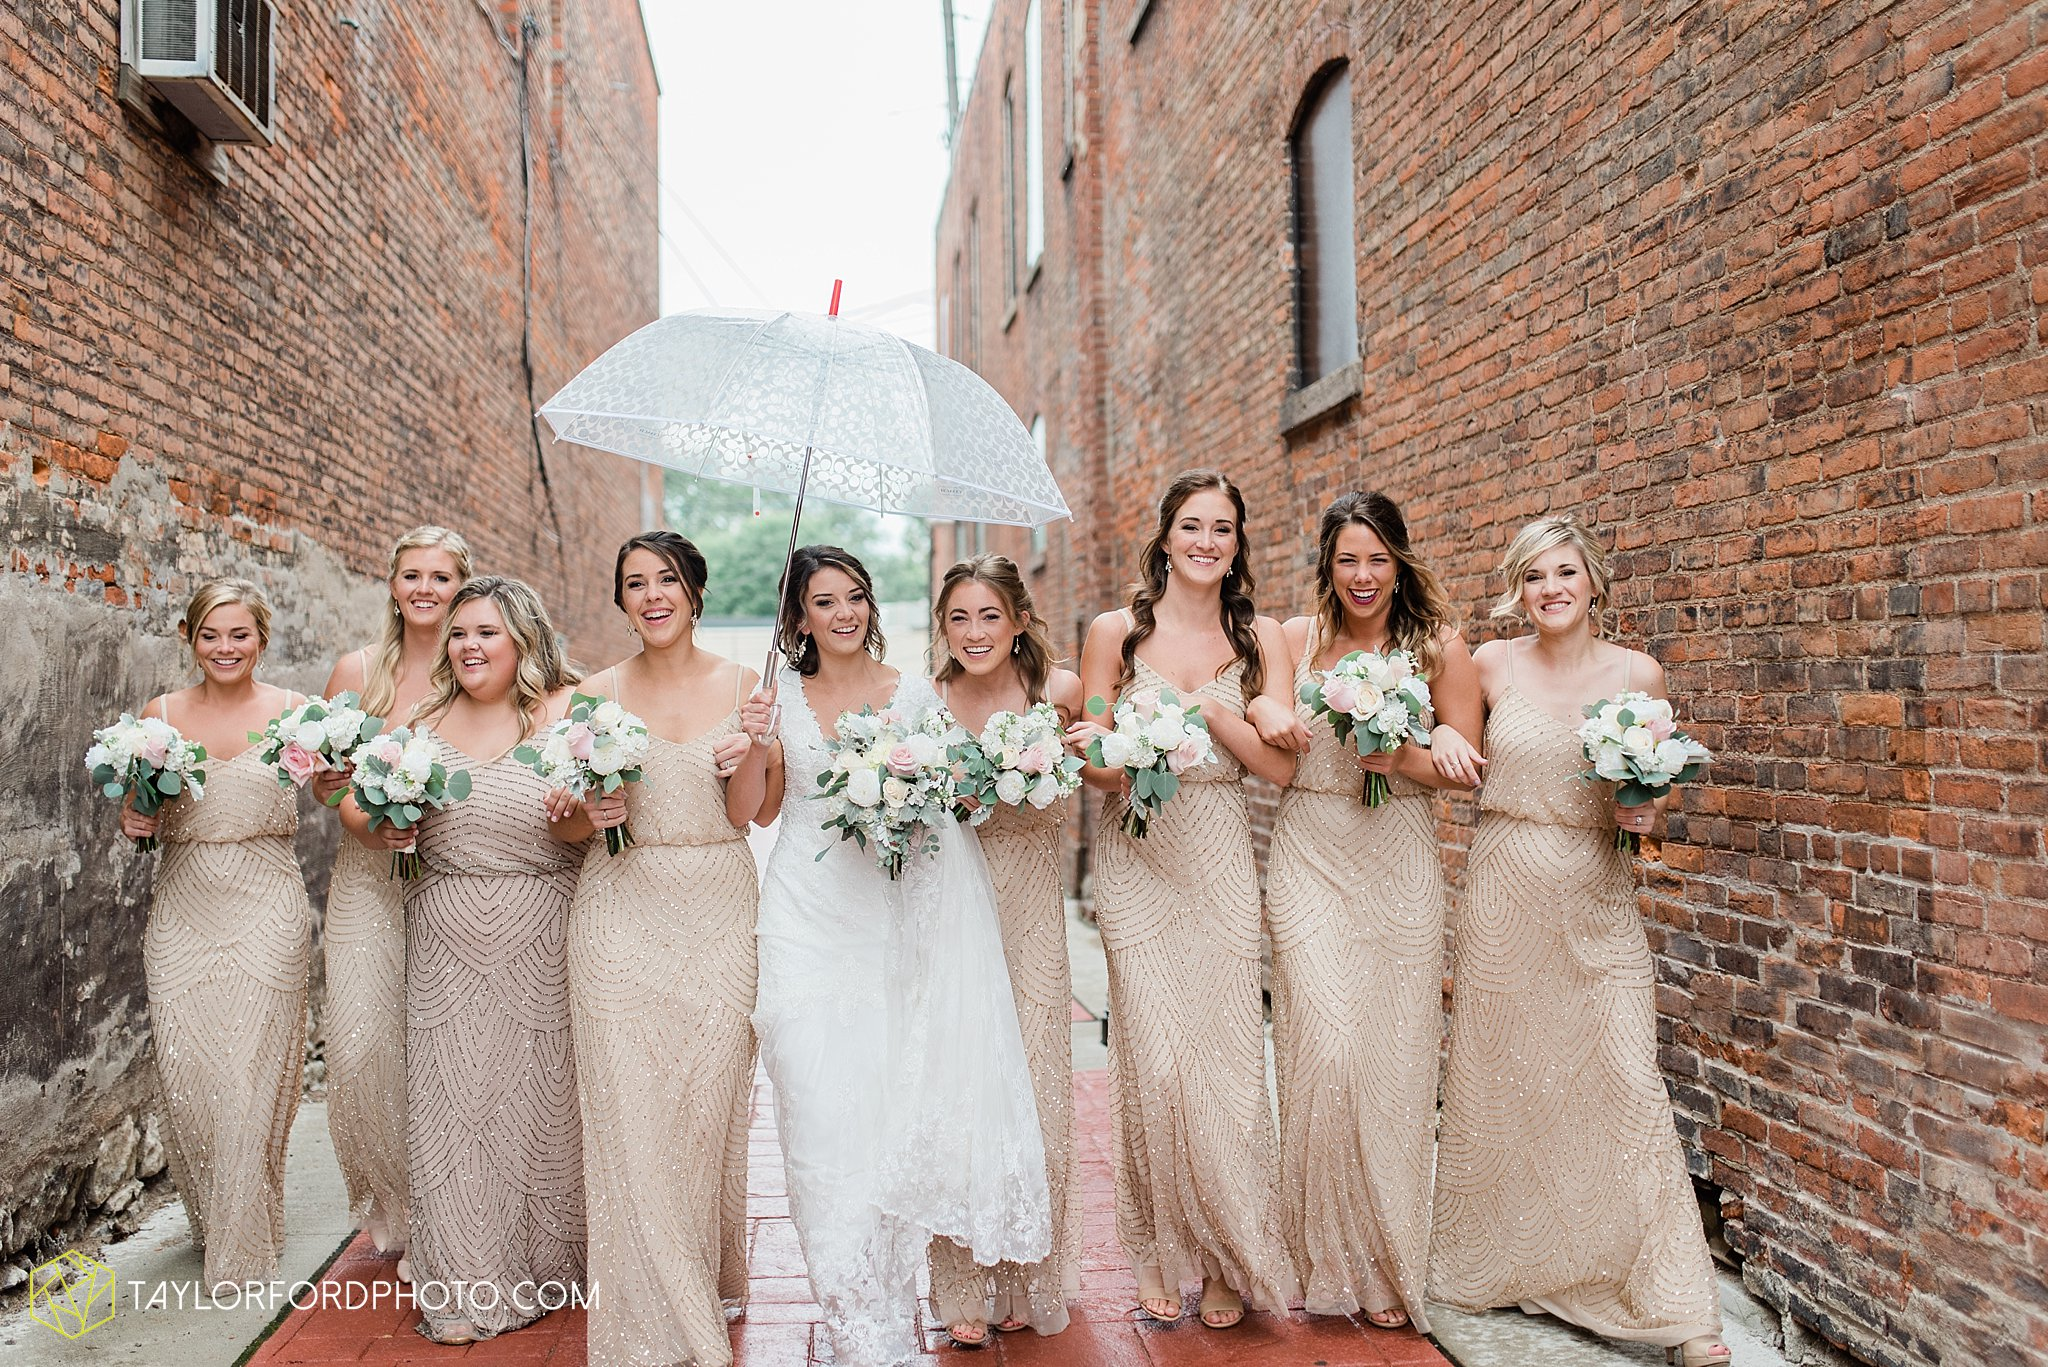 kacee-haden-sholl-second-story-saint-marys-knights-of-columbus-defiance-ohio-wedding-photographer-taylor-ford-photography_0138.jpg